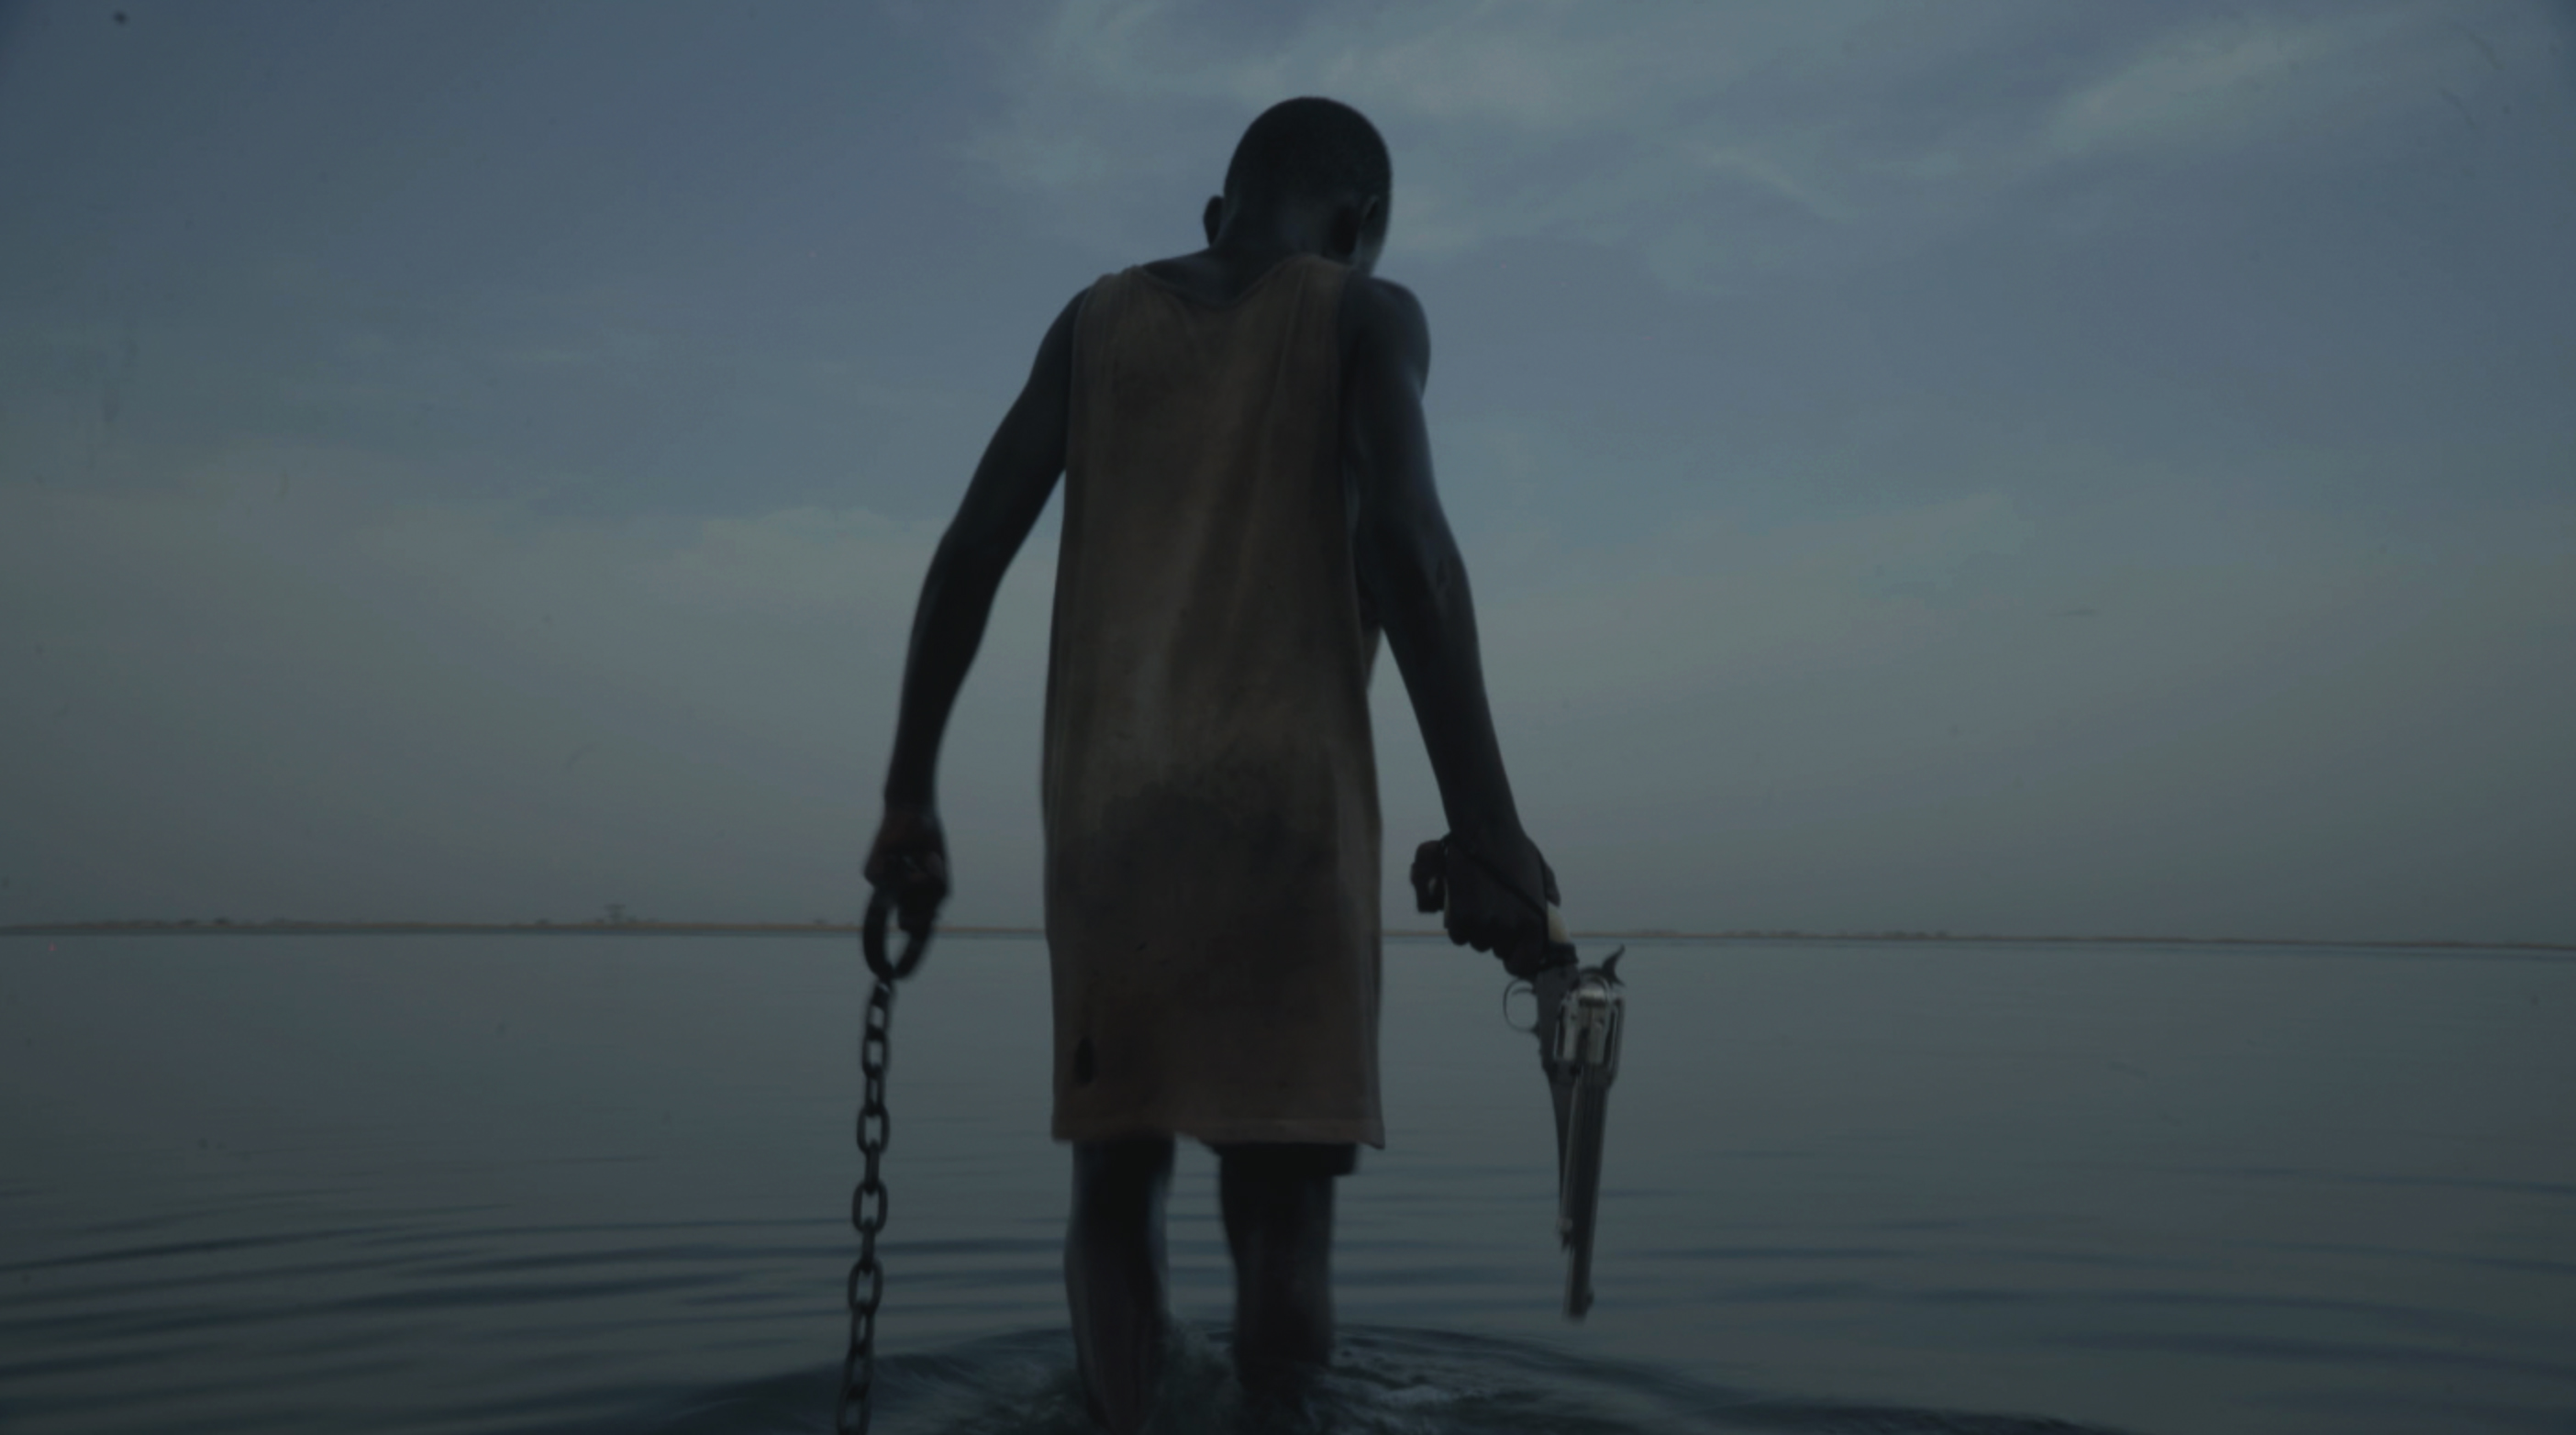 A person with a shaved head wearing a plain shift is seen from behind, ankle-deep in a bay holding a cuffed chain in one hand and a large revolver in the other.